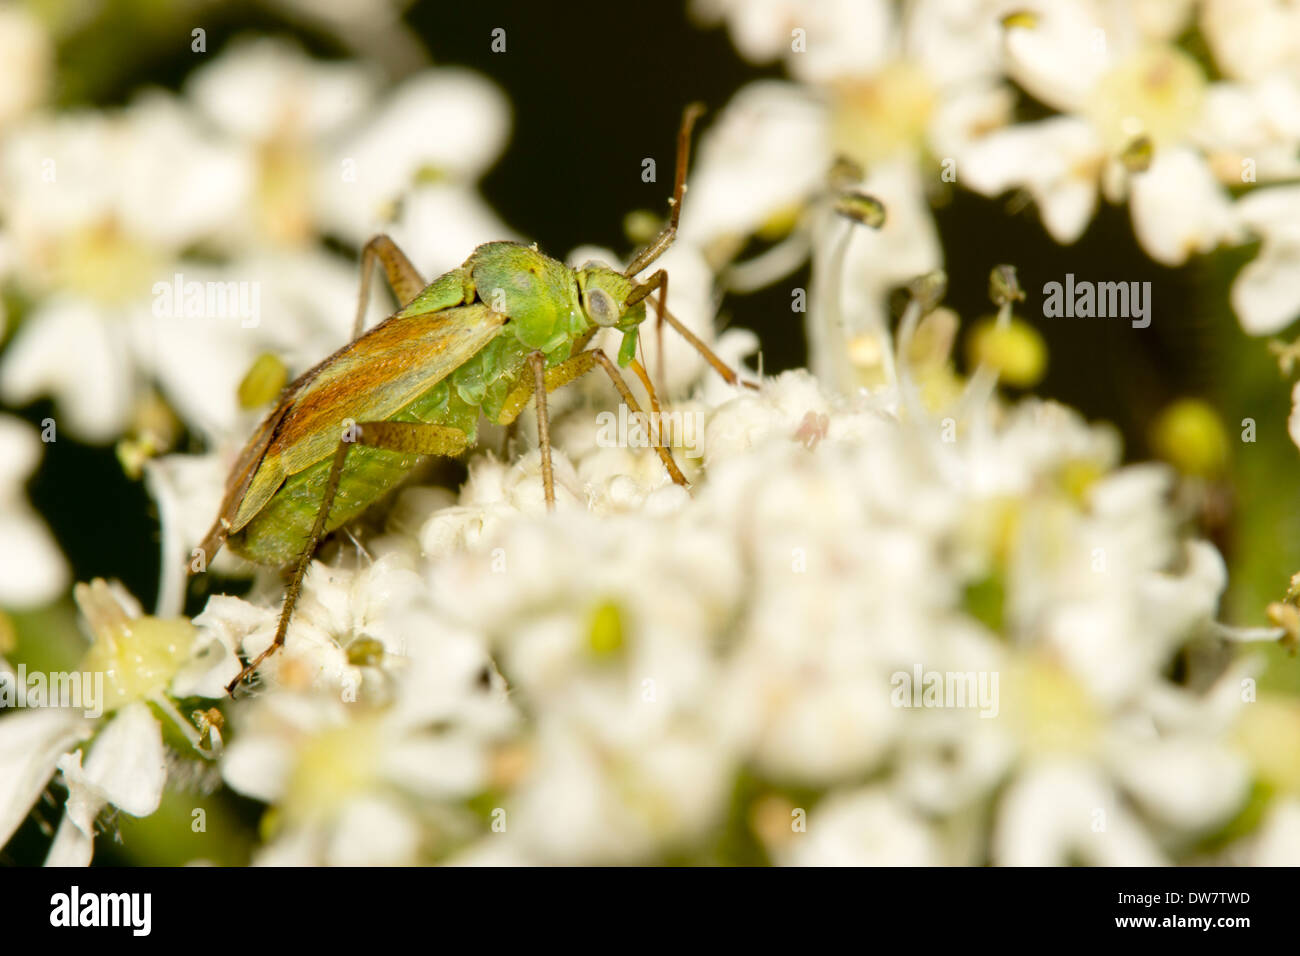 Male potato capsid bug, Closterotomus norwegicus, feeding on the flower heads of an umbellifer - Stock Image